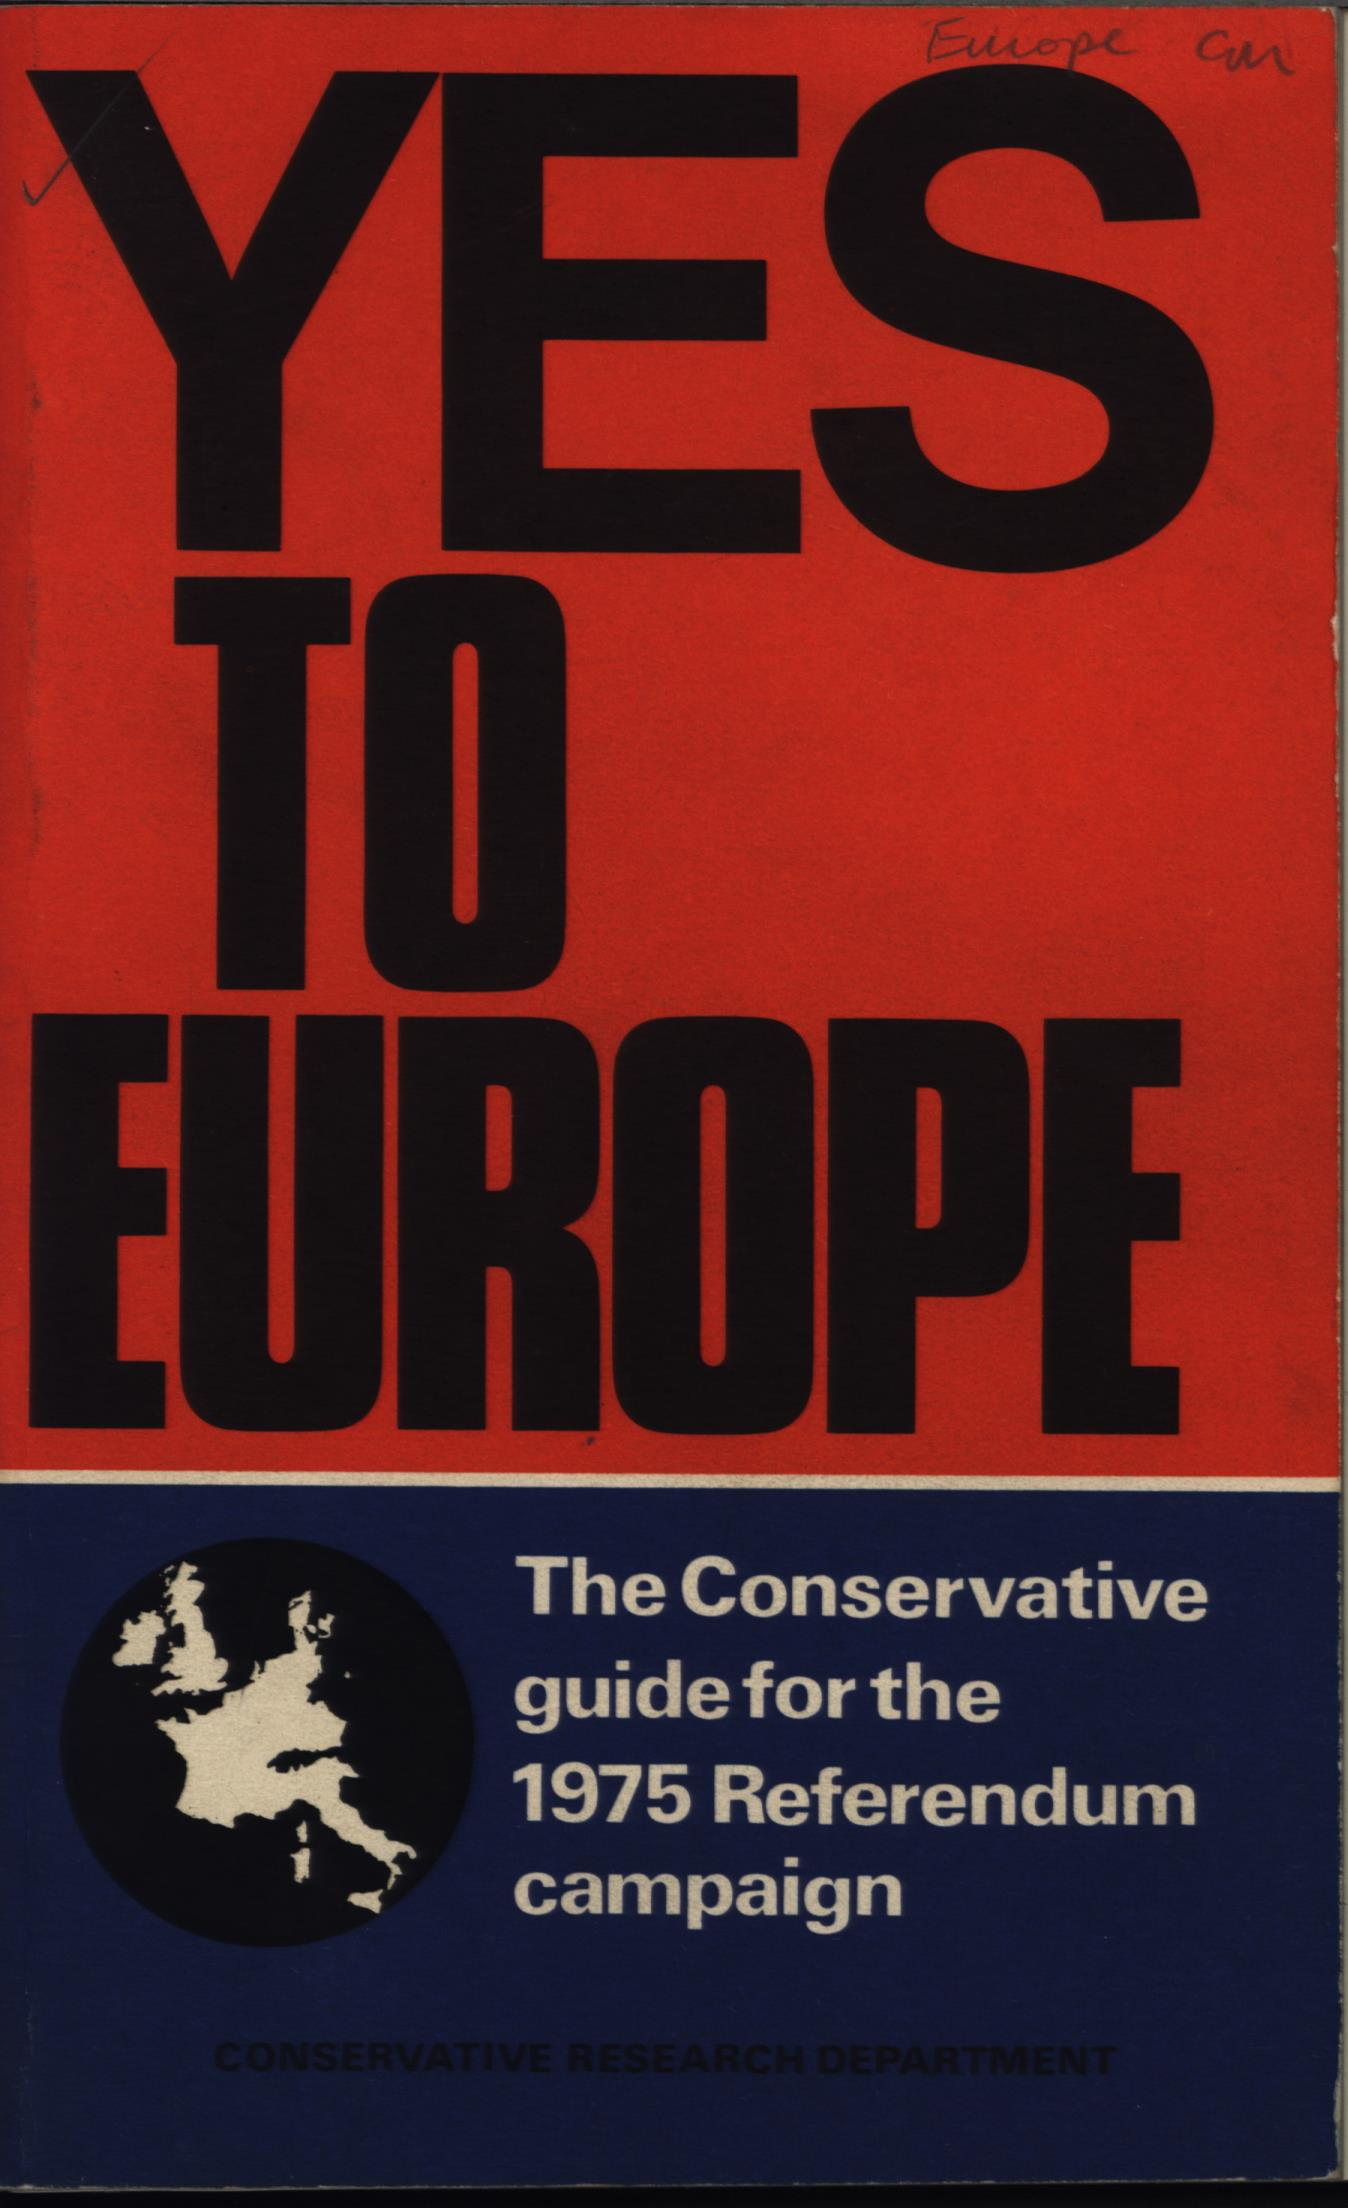 Yes to Europe pamphlet